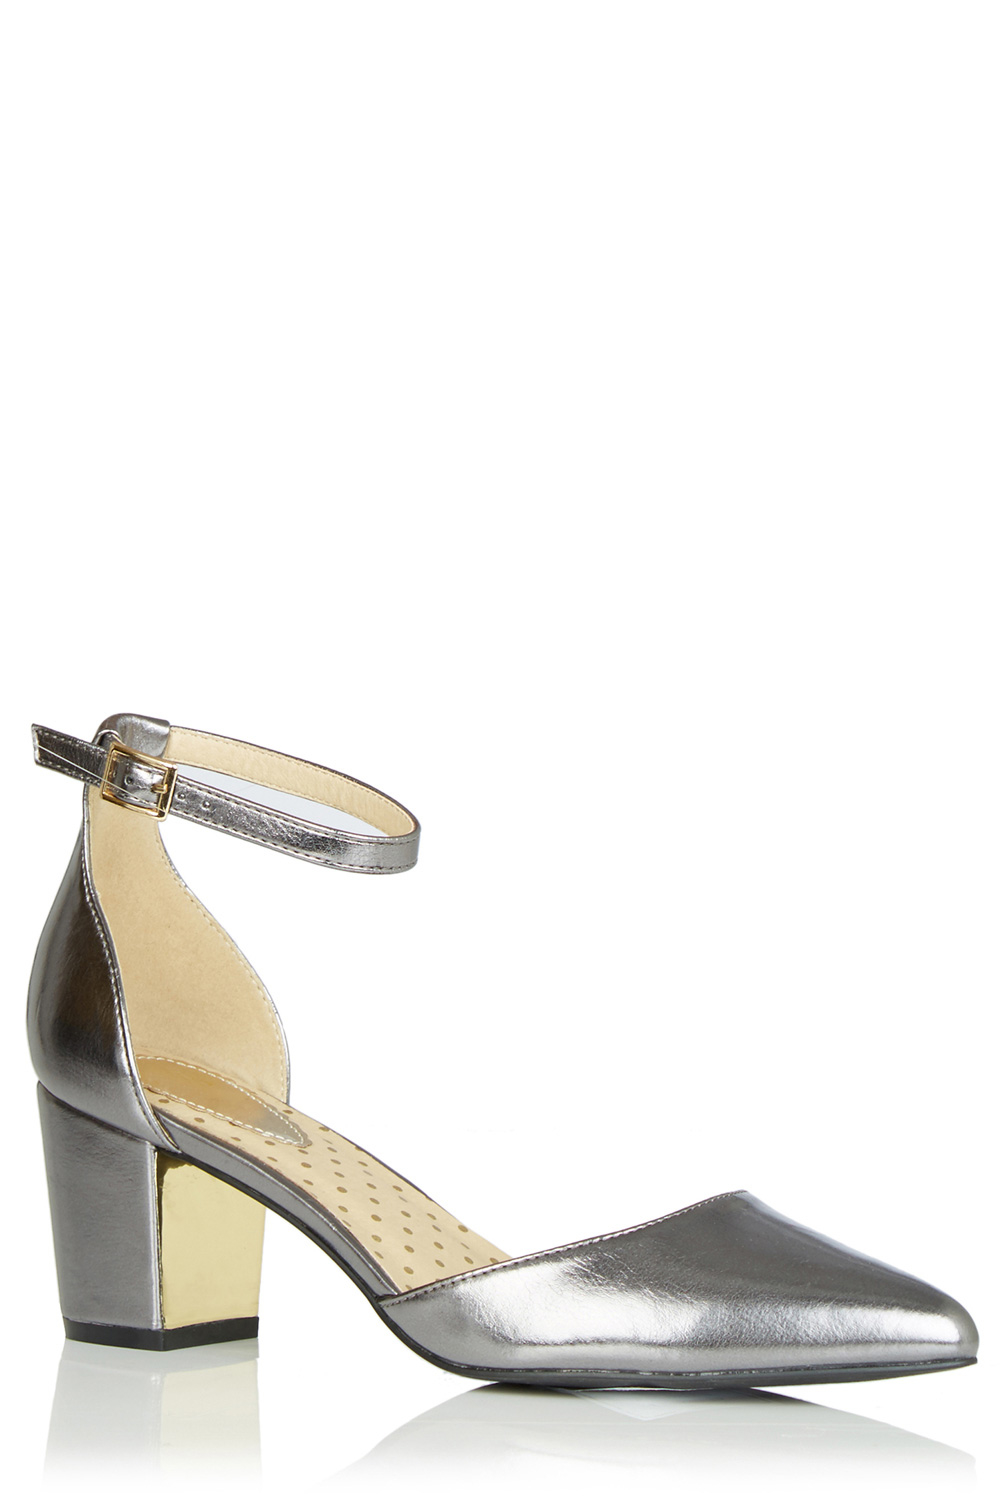 Block Heel Metallic Shoes Uk